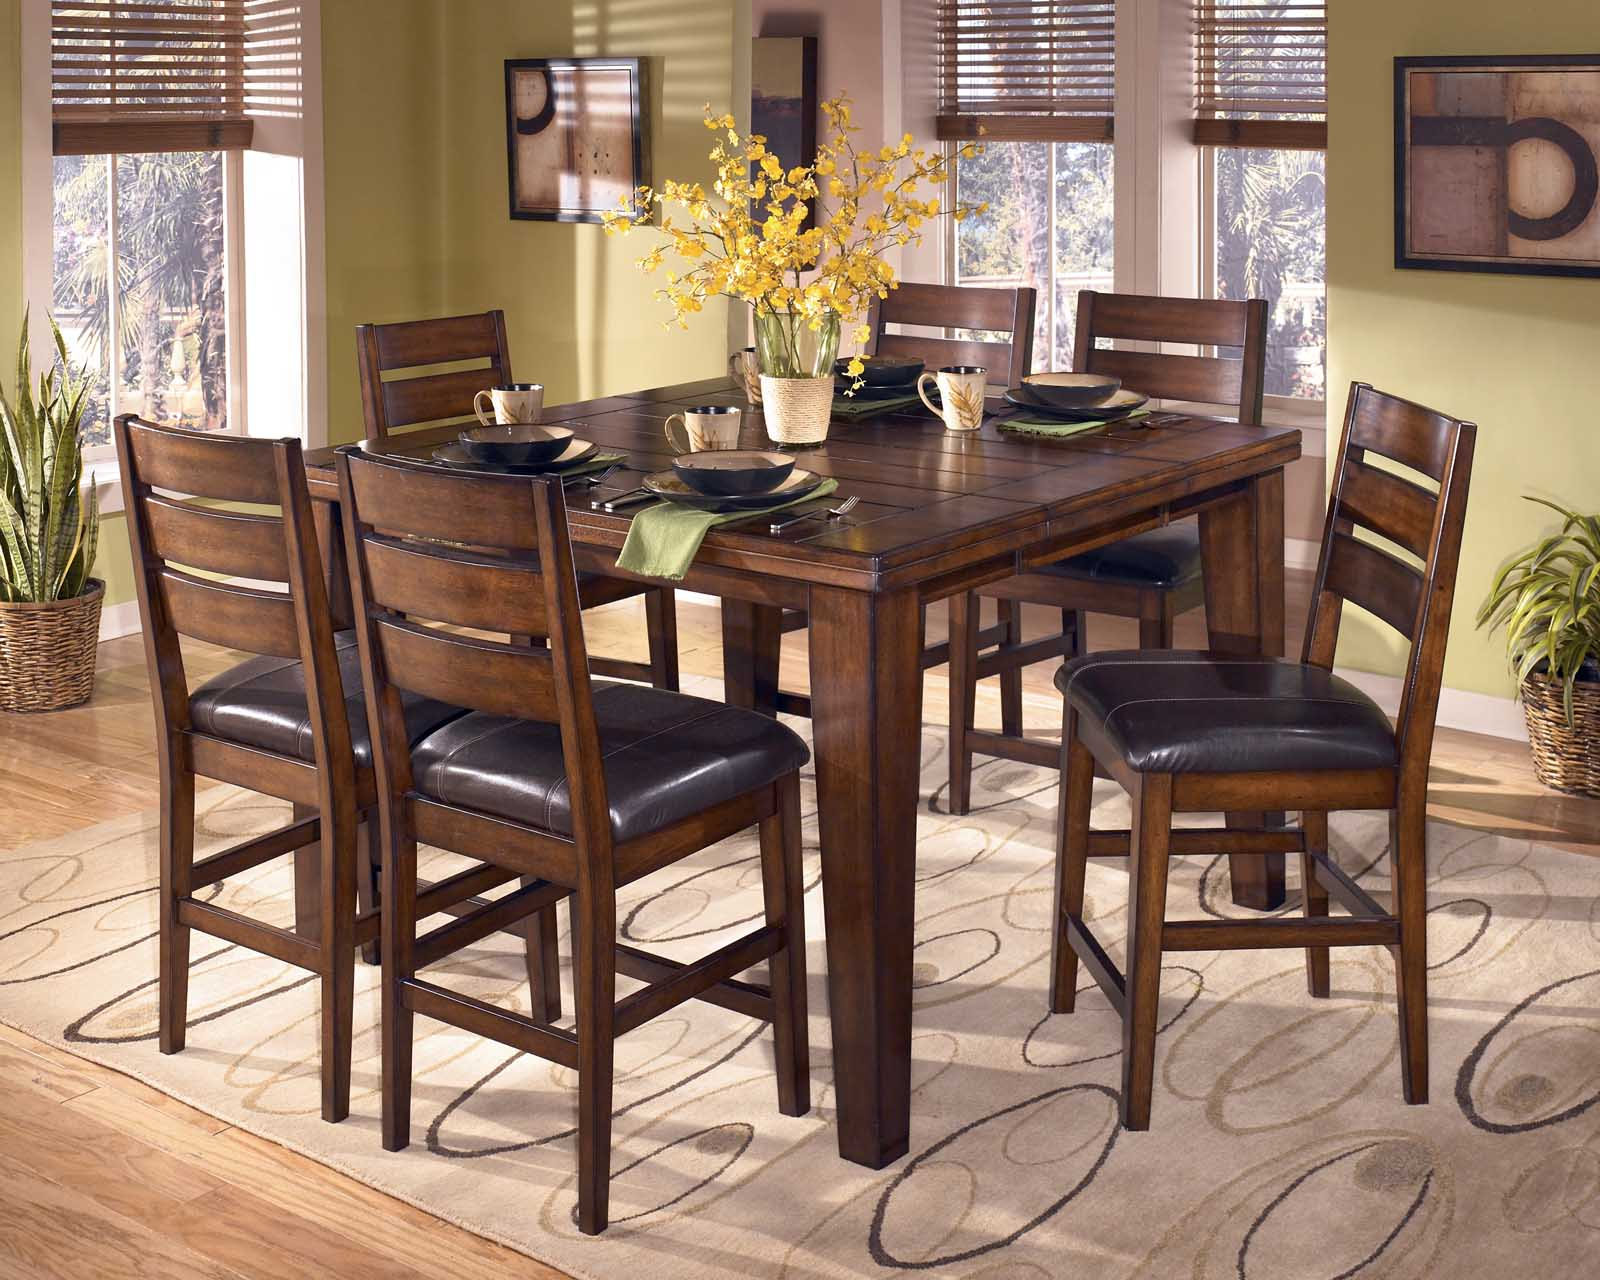 Larchmont 7 Piece Butterfly Leaf Counter Height Dining Set